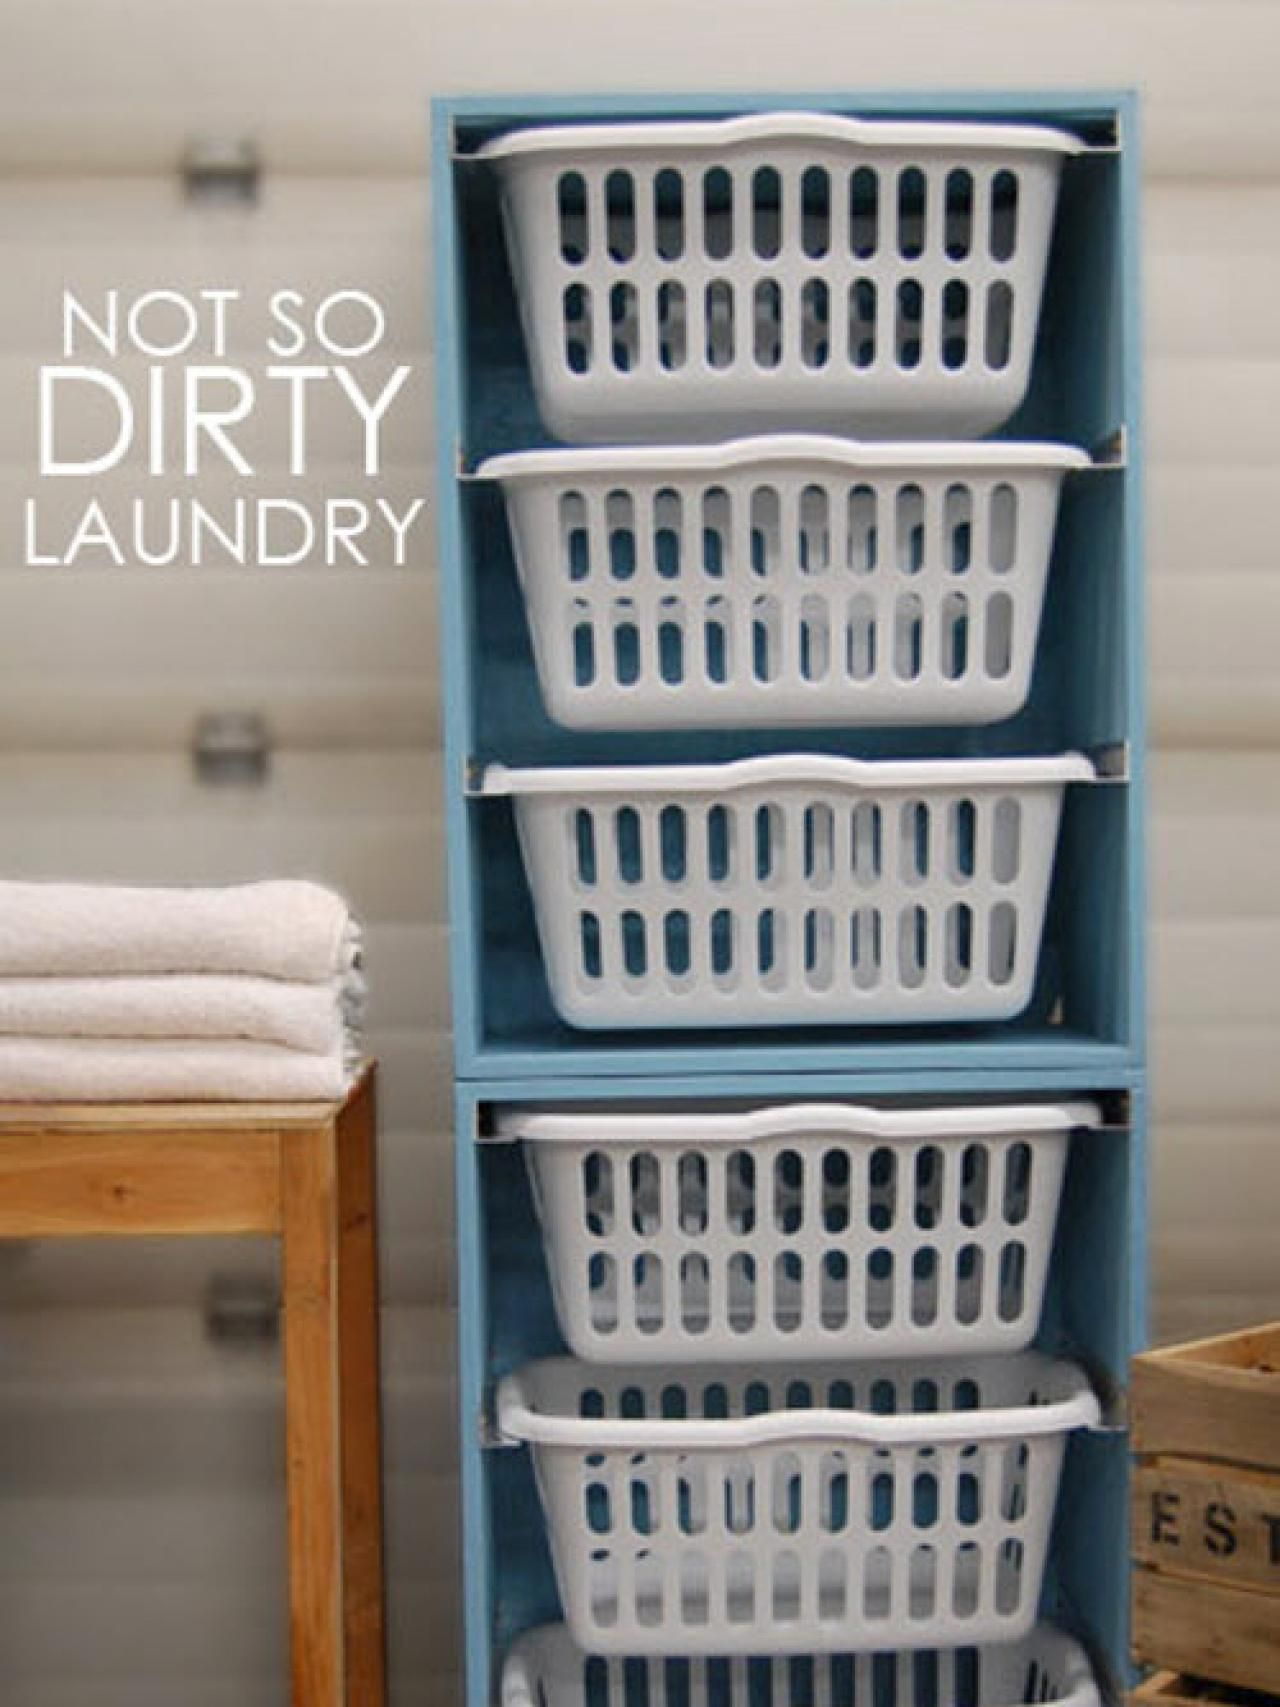 Portable Laundry Room Storage Unit Easy Ideas For Organizing And Cleaning Your Home Hgtv